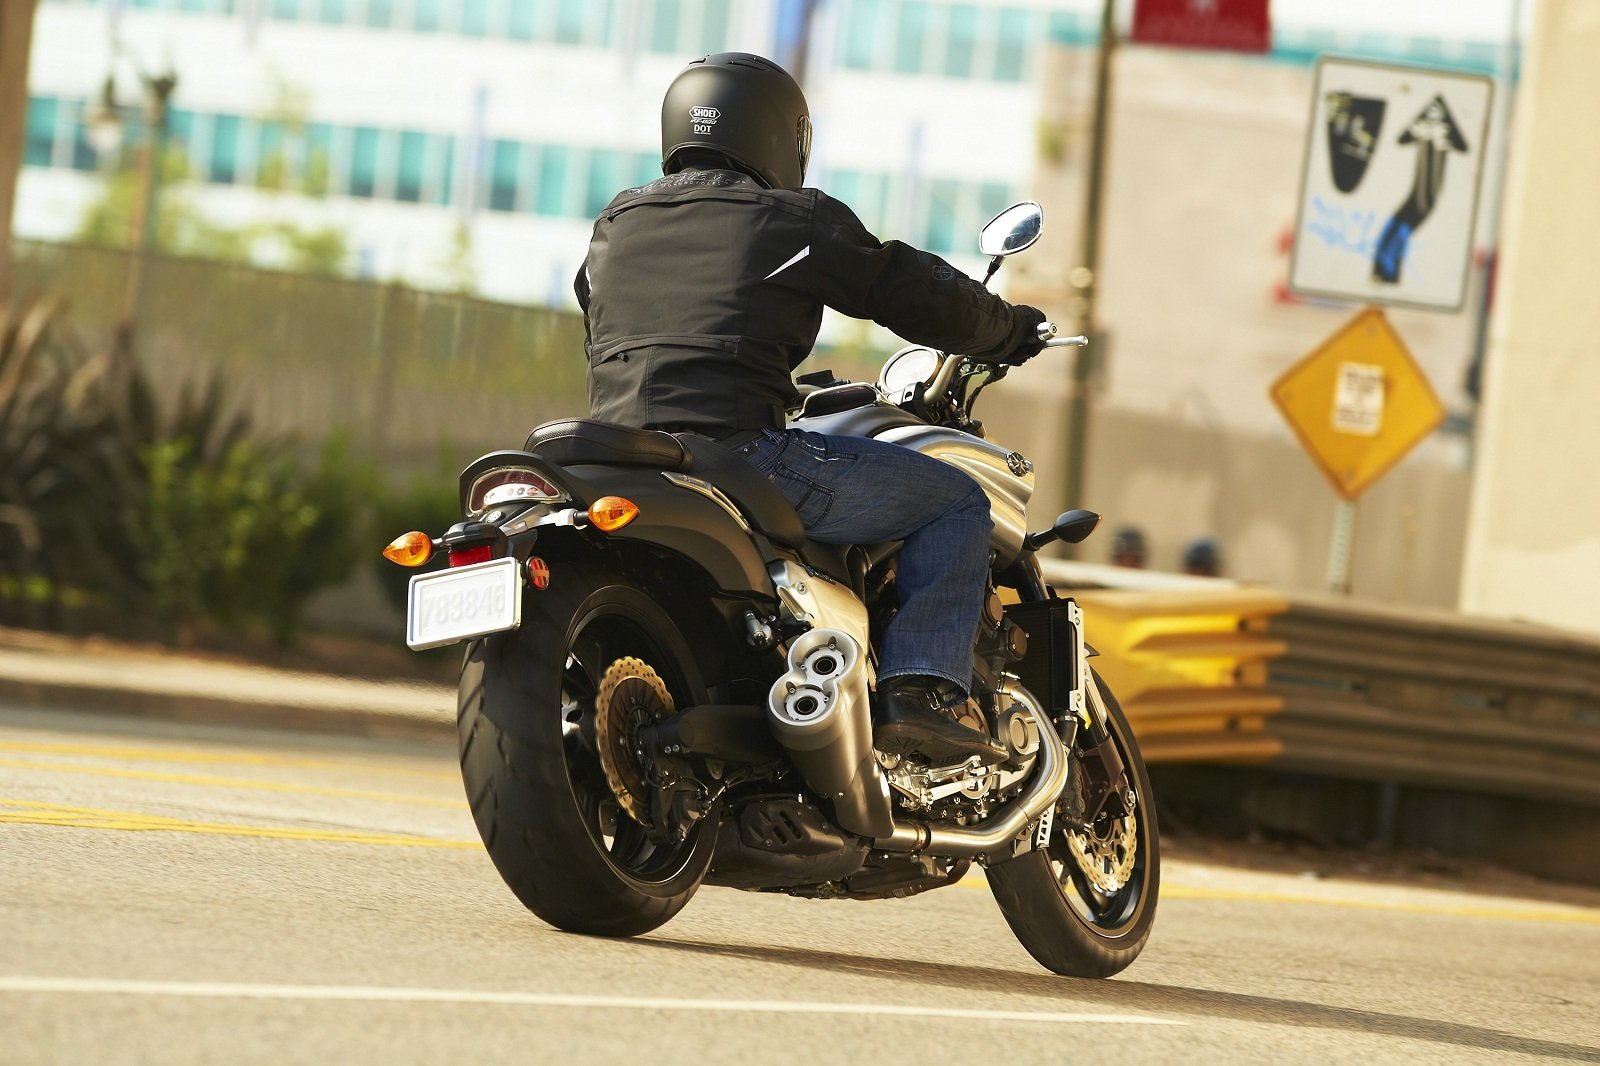 2012 Yamaha V Max Picture 419726 Top Speed Pictures To Pin On